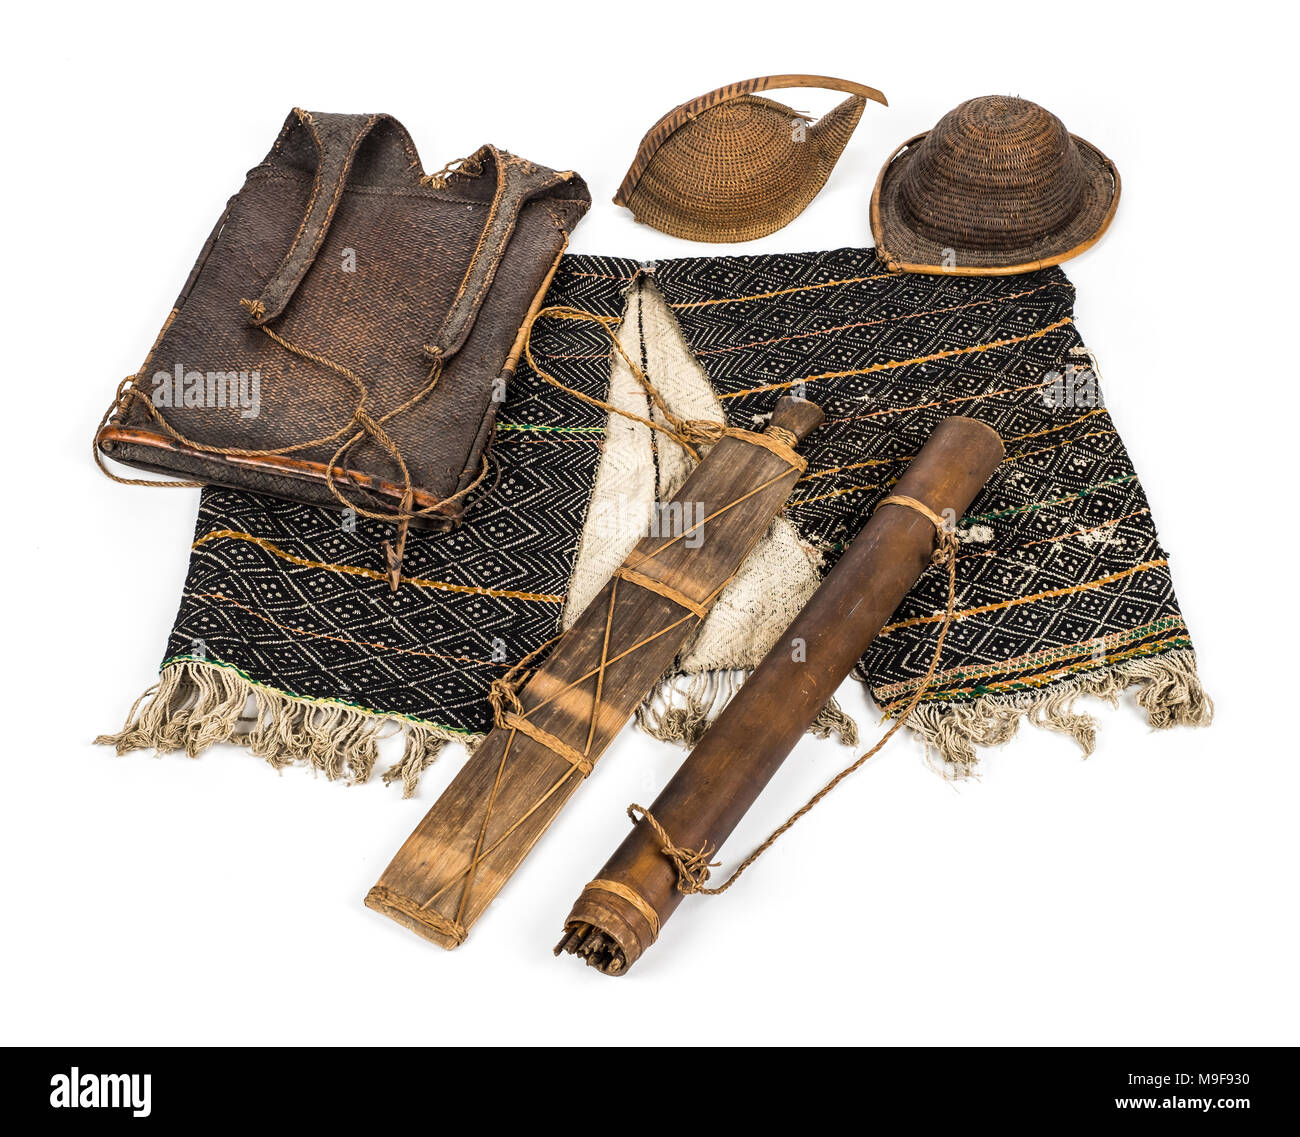 Apatani tribe items including a Yatee hat, a Bopa hat and other items woven from bamboo and cane. The Apatani are from Arunachal Pradesh in India. - Stock Image